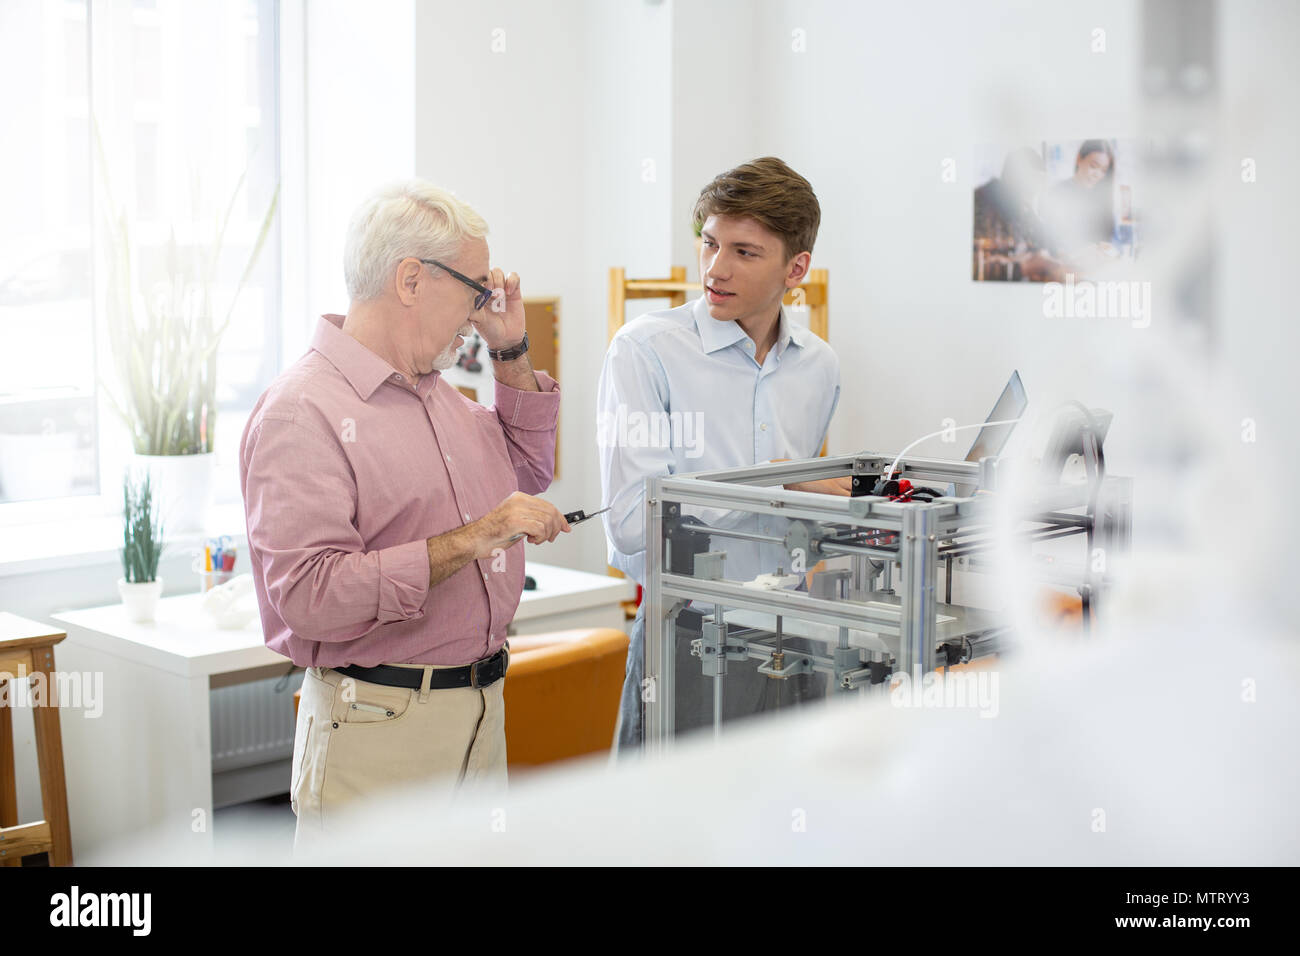 Pleasant intern talking with his supervisor while printing 3D models - Stock Image